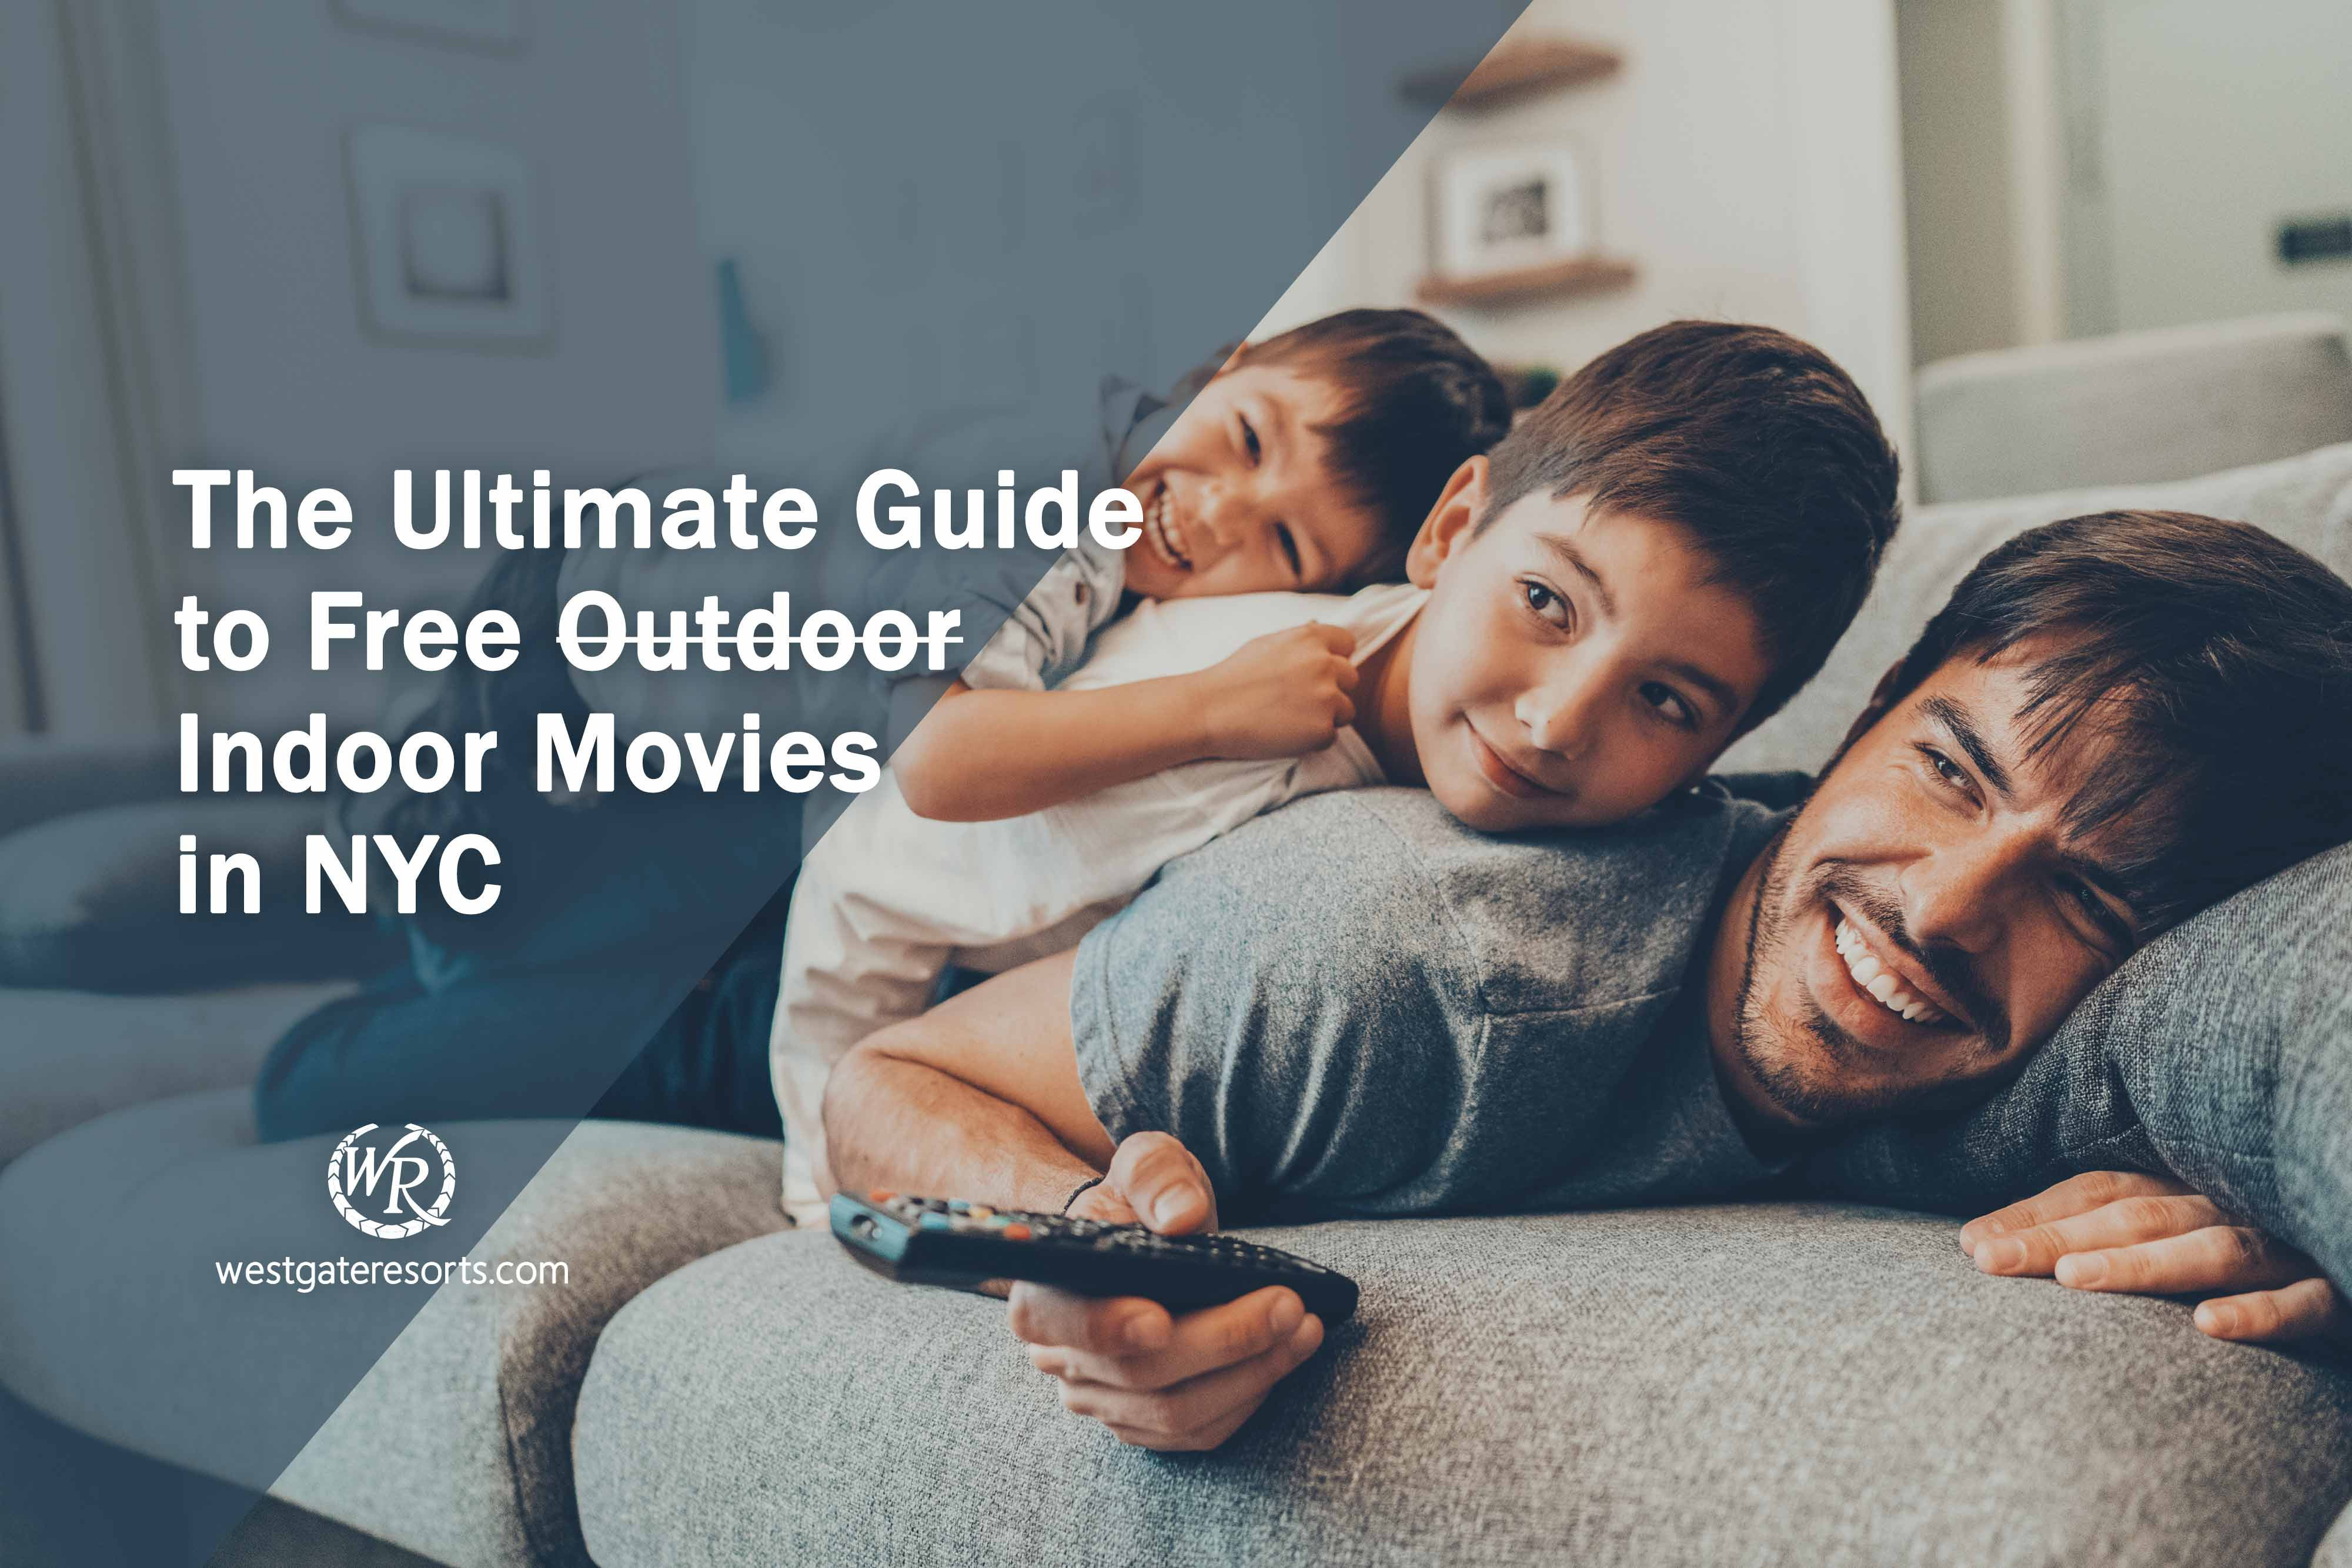 The Ultimate Guide to Free Outdoor Movies in NYC for 2020 | NYC Movie Guide